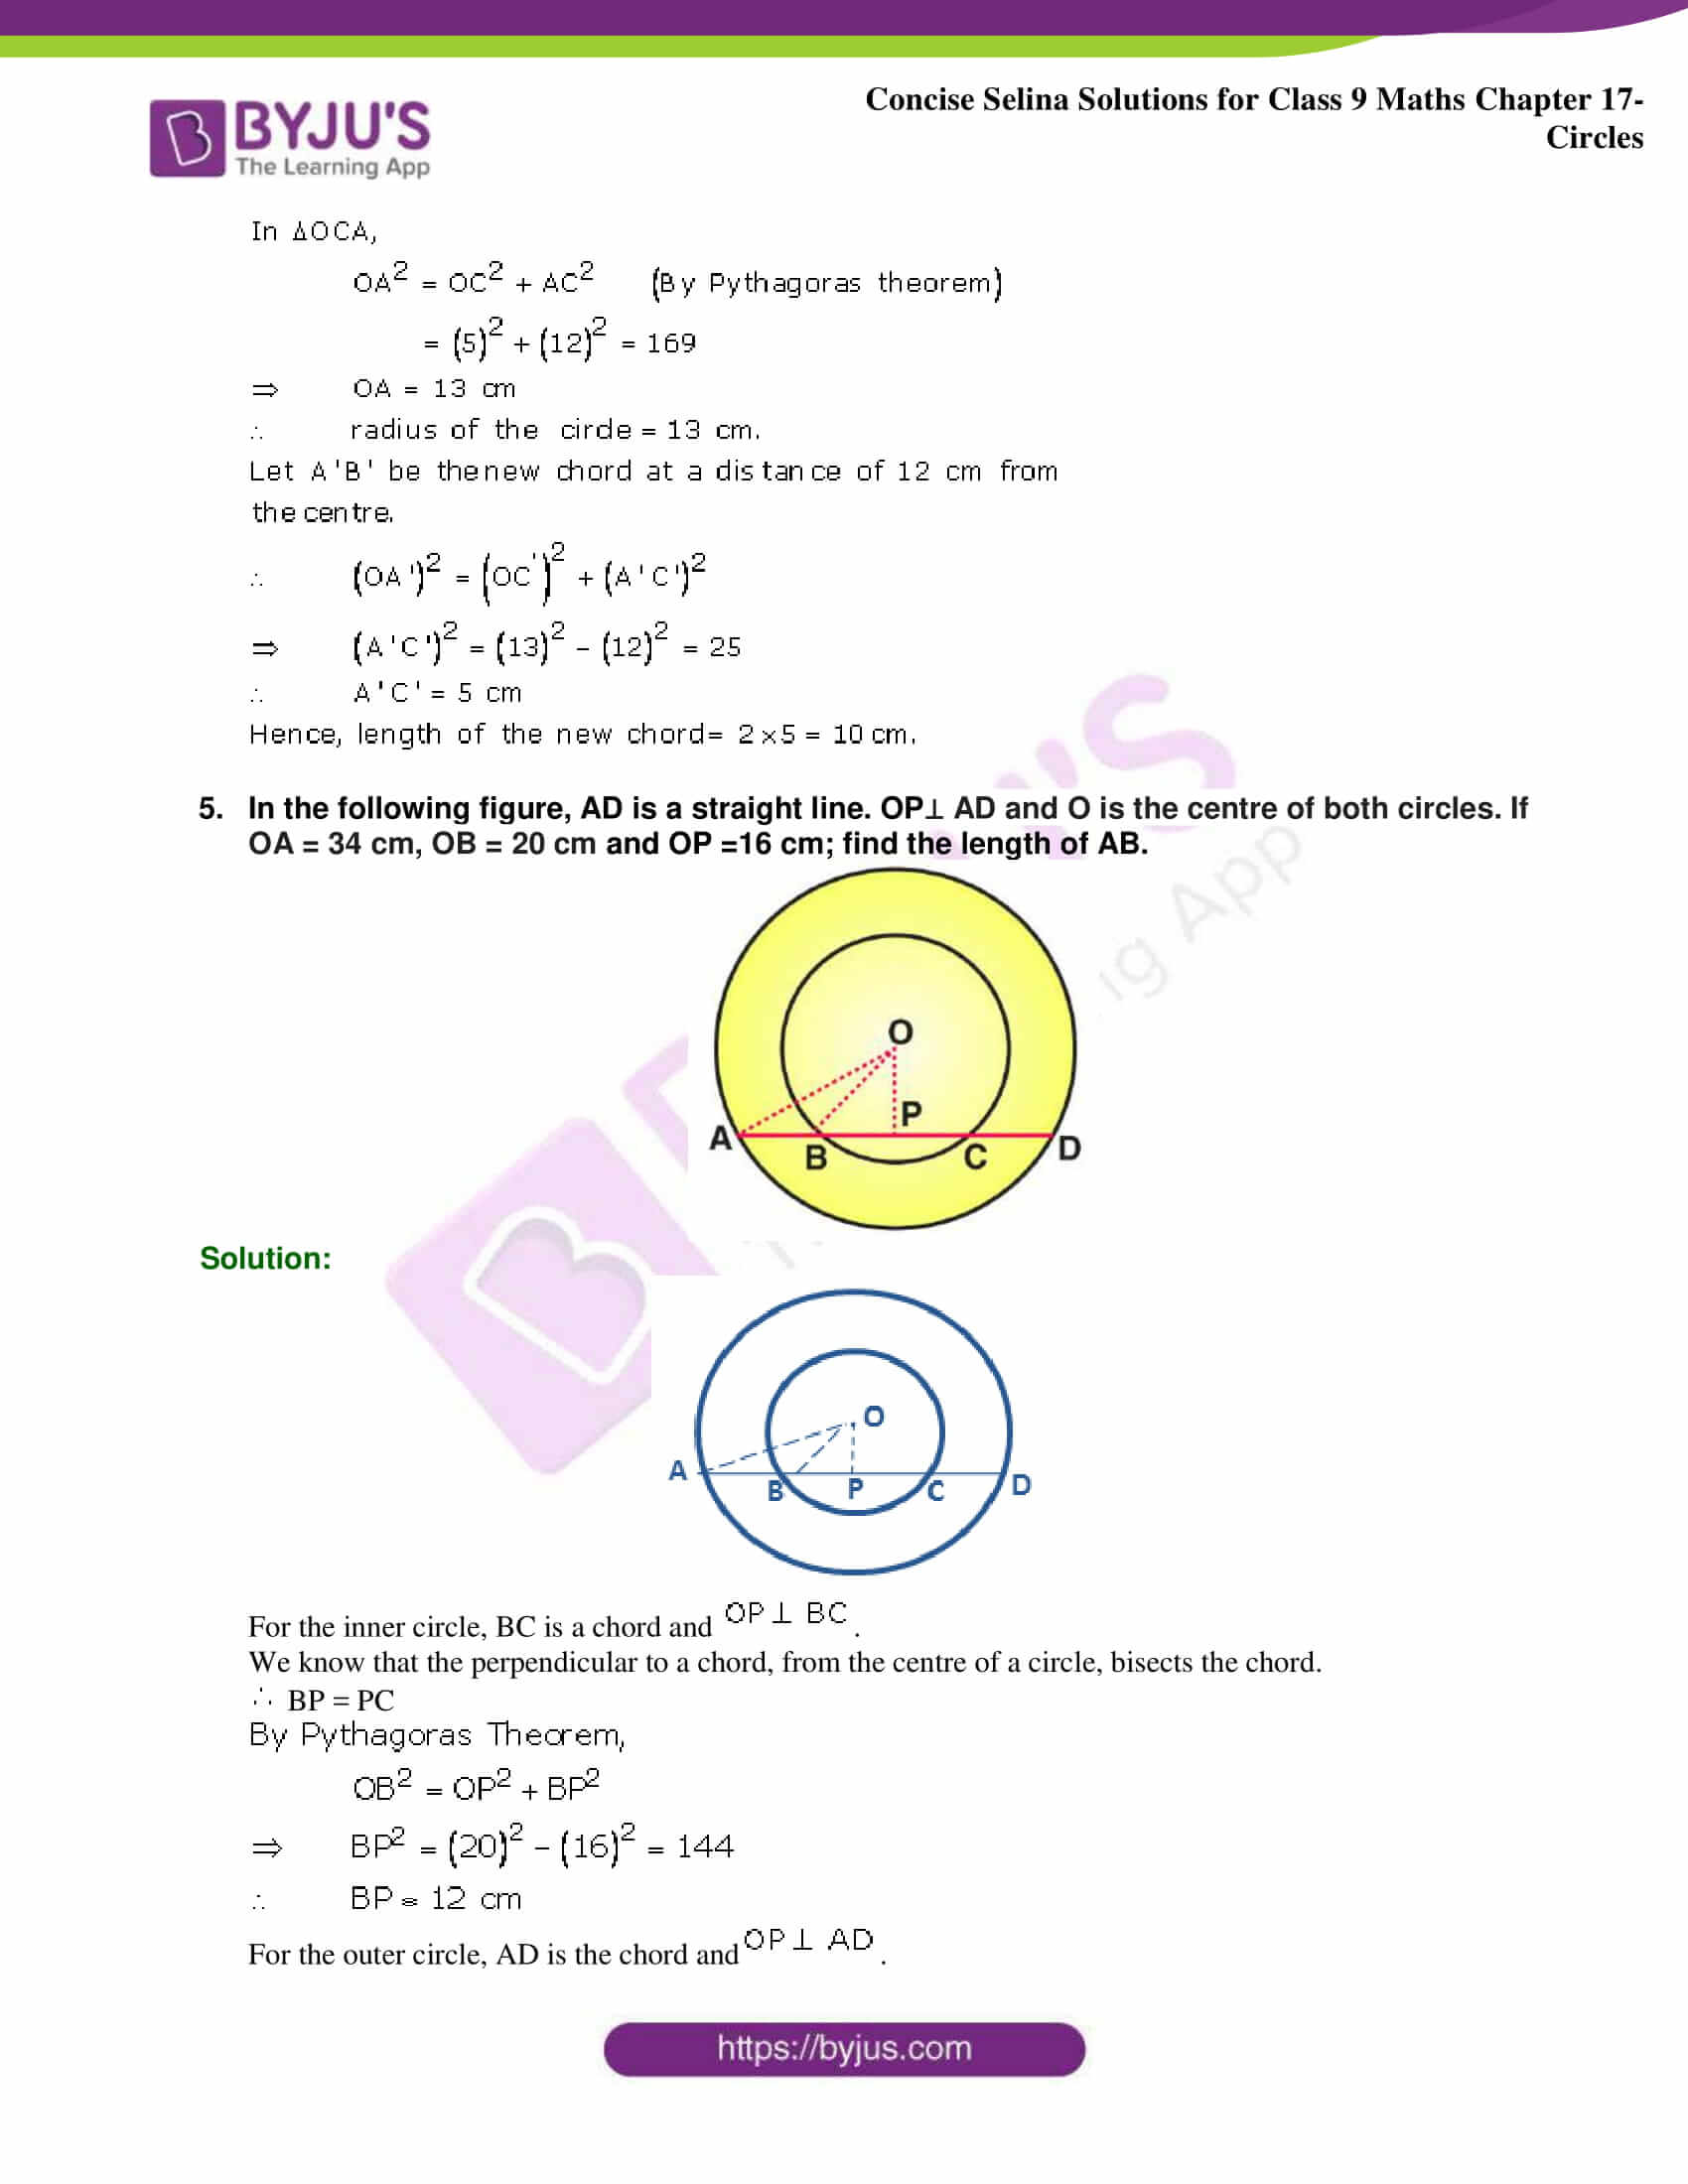 Concise Selina Solutions Class 9 Maths Chapter 17 Circles part 03